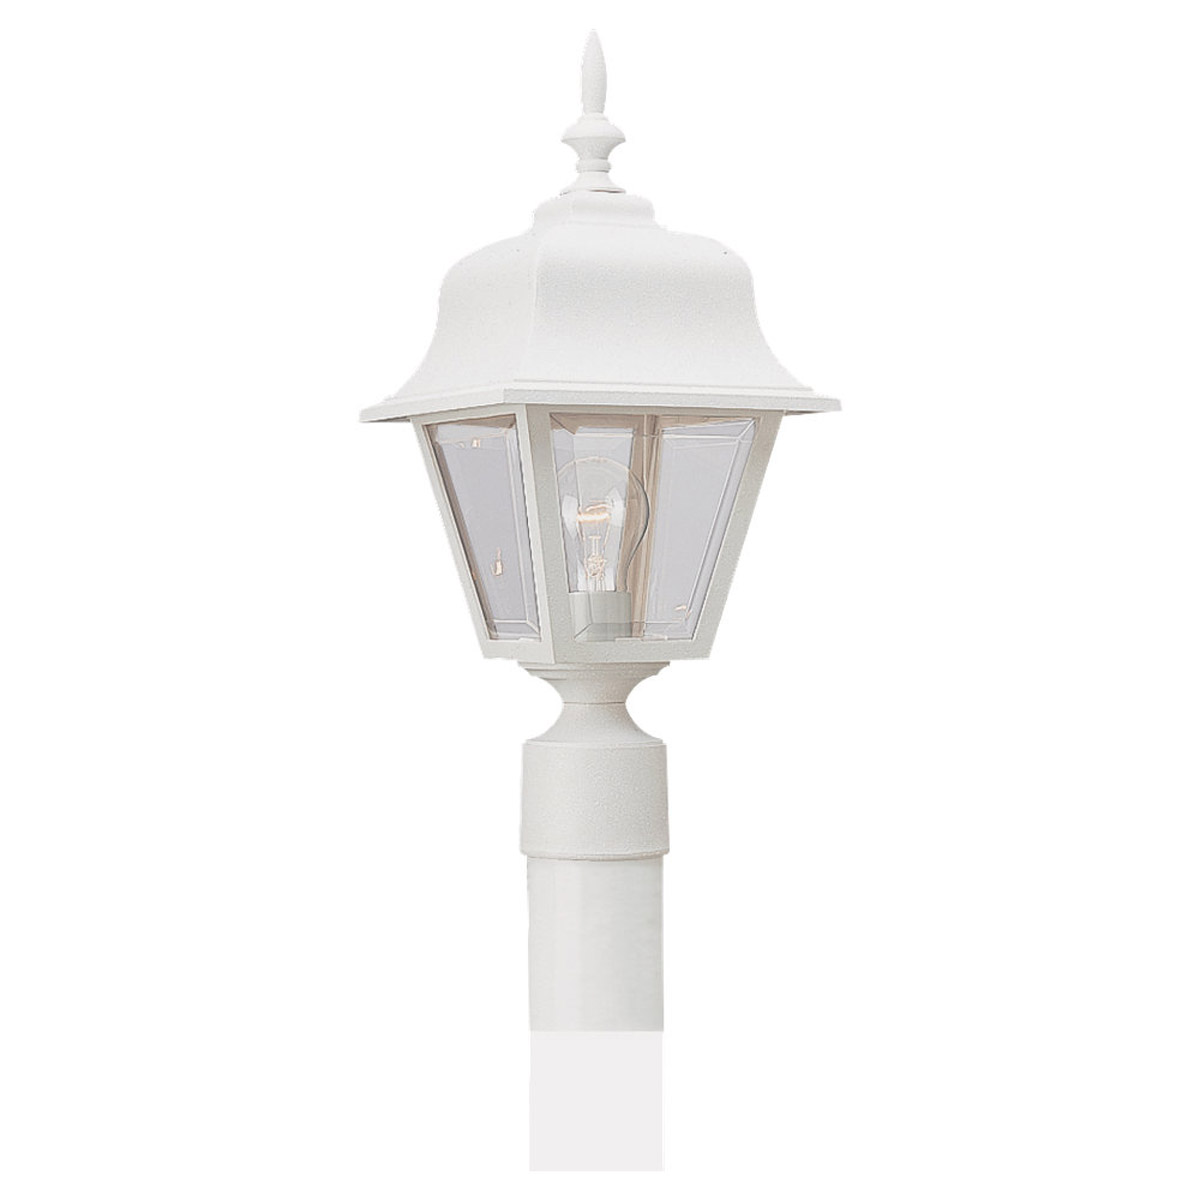 Sea Gull Lighting Polycarb Painted Lanterns 1 Light Outdoor Post Lantern in White 8255-15